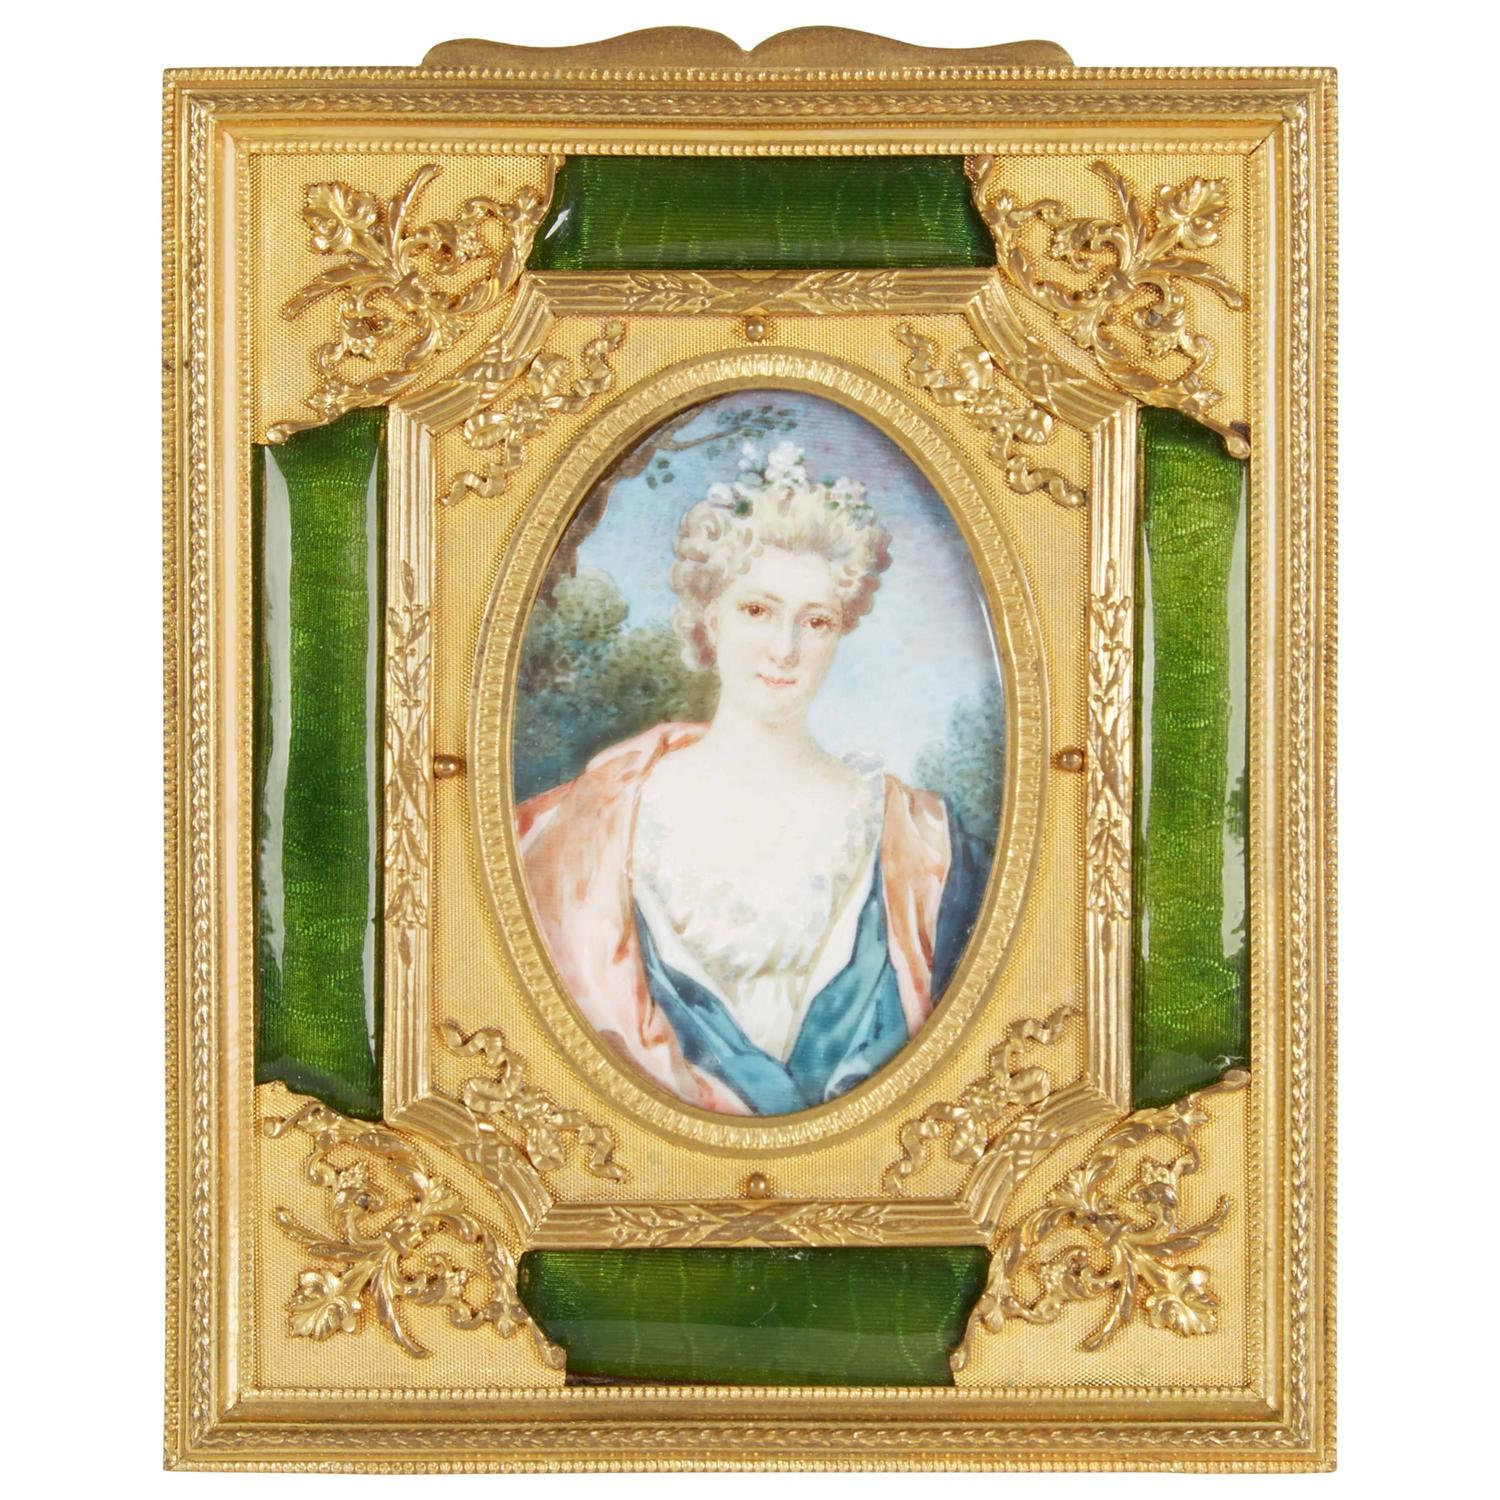 19th Century Picture Frames - 216 For Sale at 1stdibs